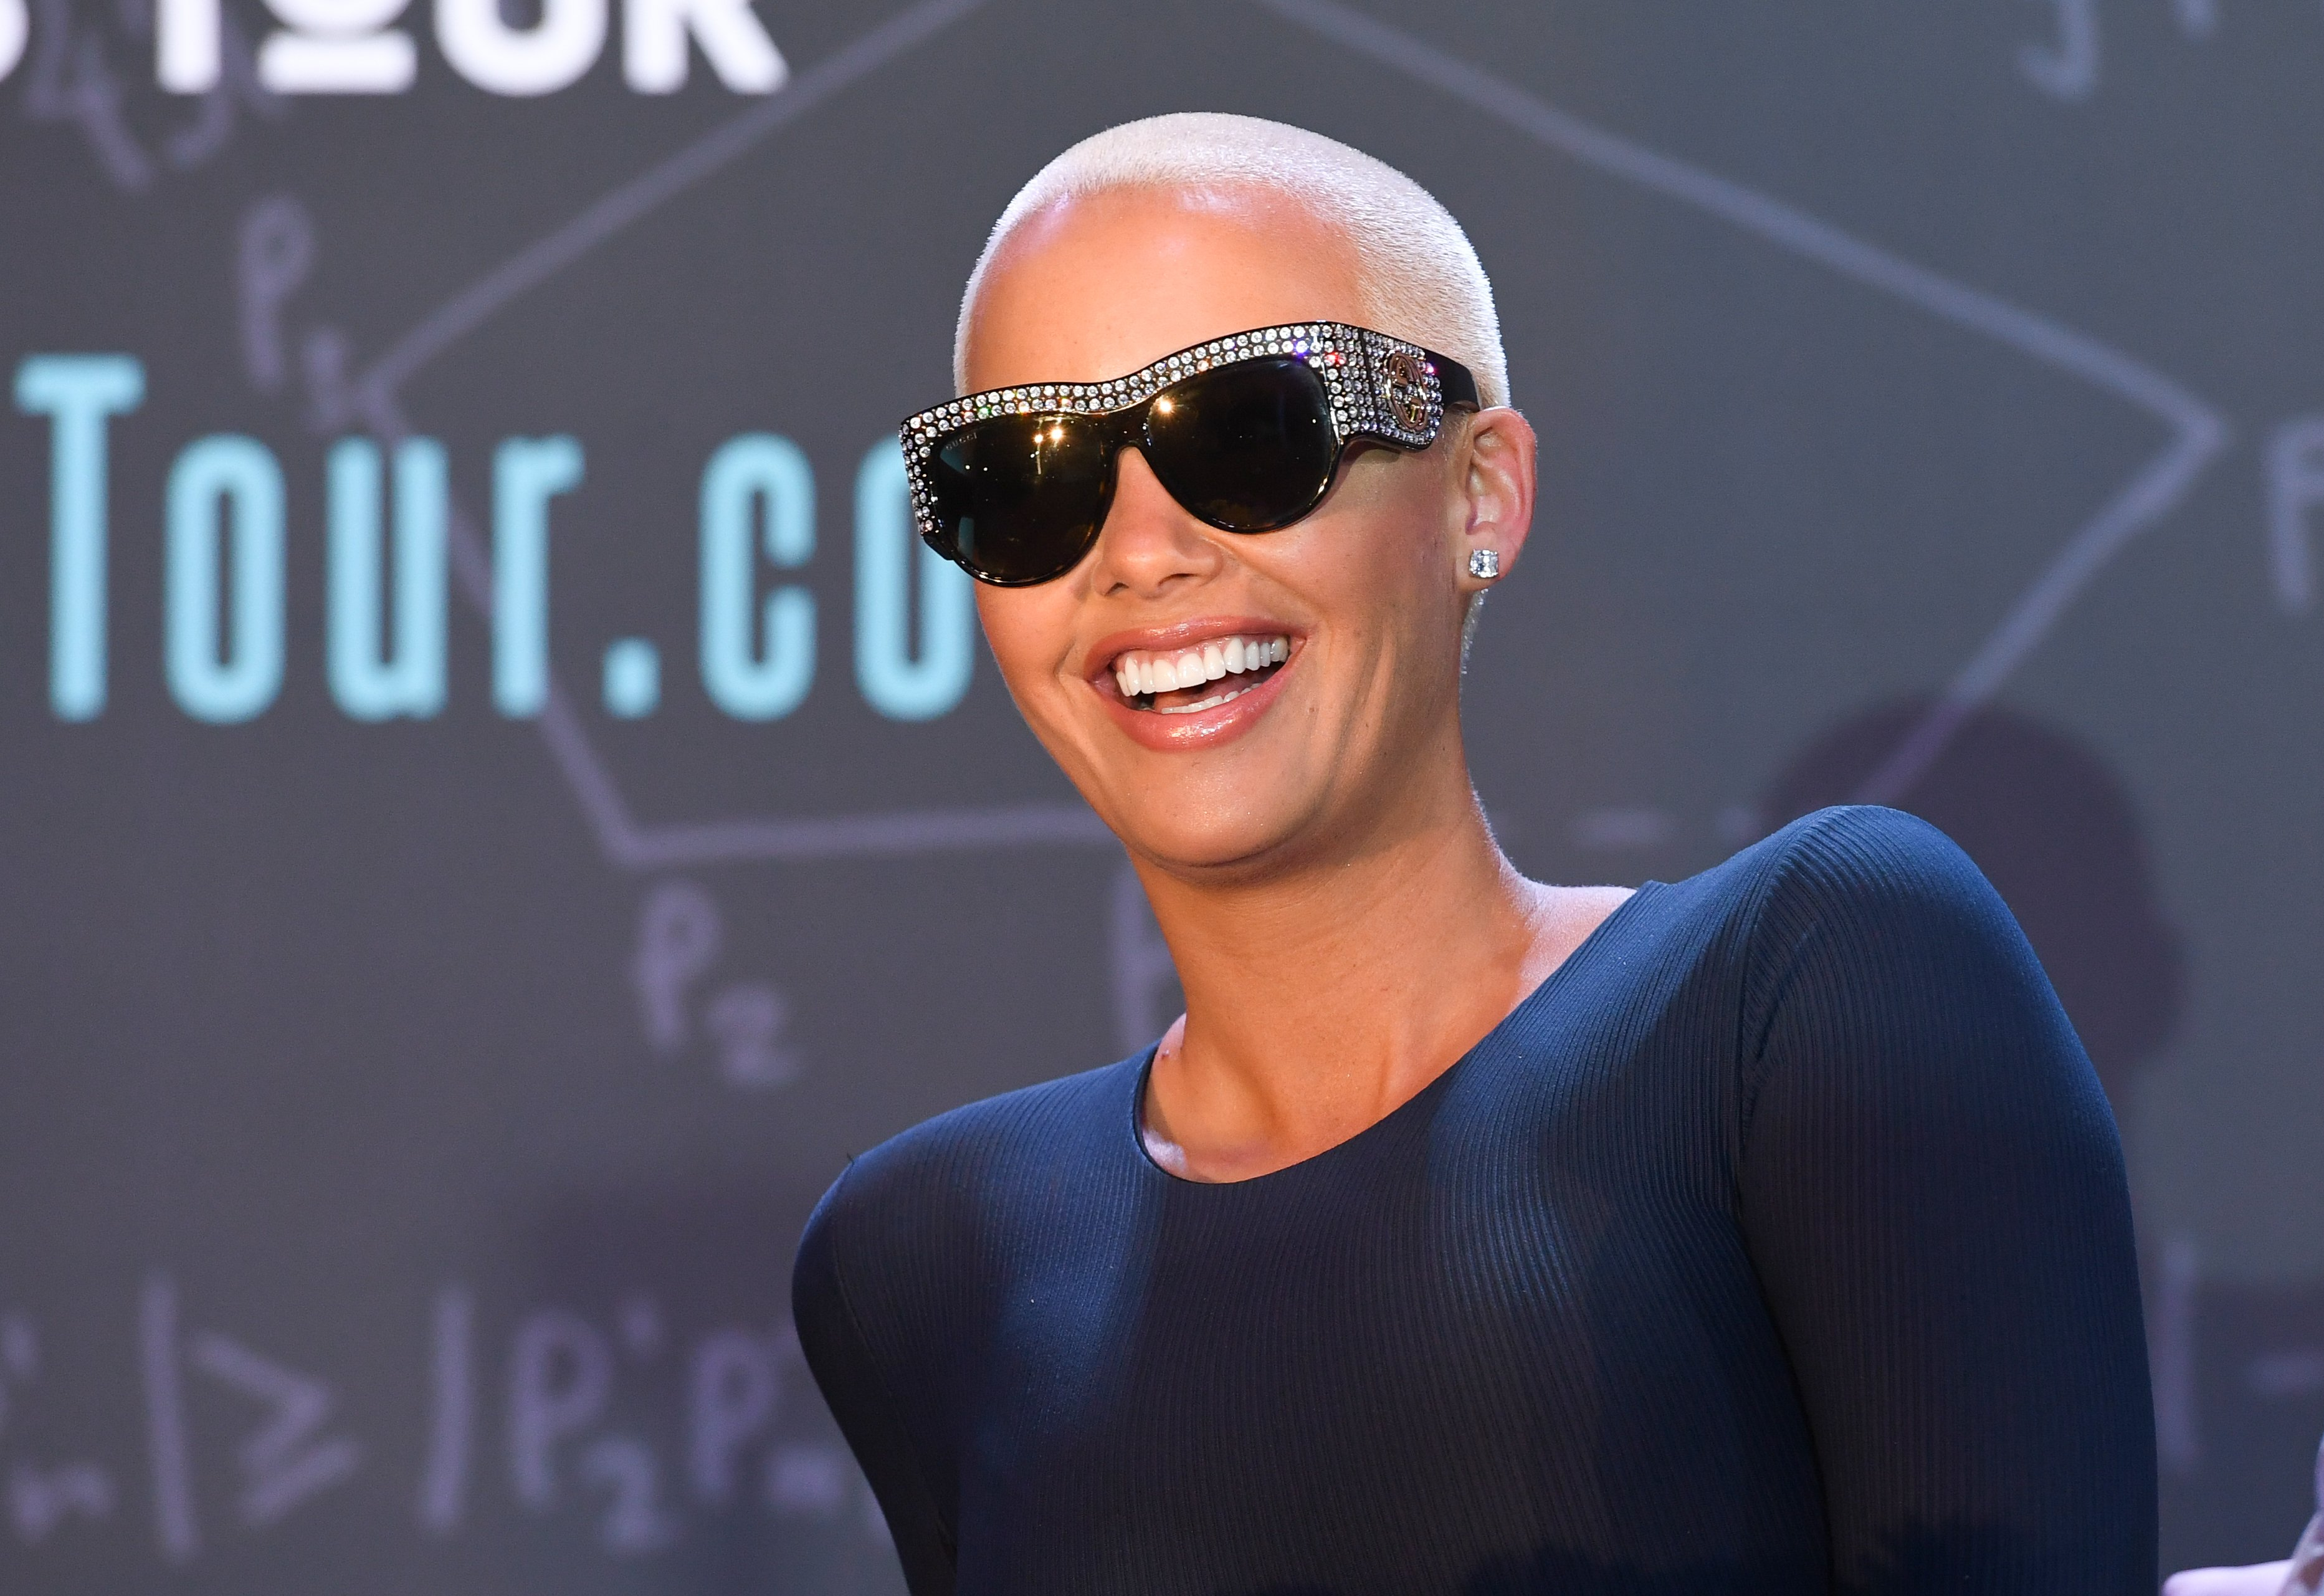 Amber Rose during an appearance at Clark Atlanta University on April 20, 2017 in Atlanta, Georgia. | Source: Getty Images